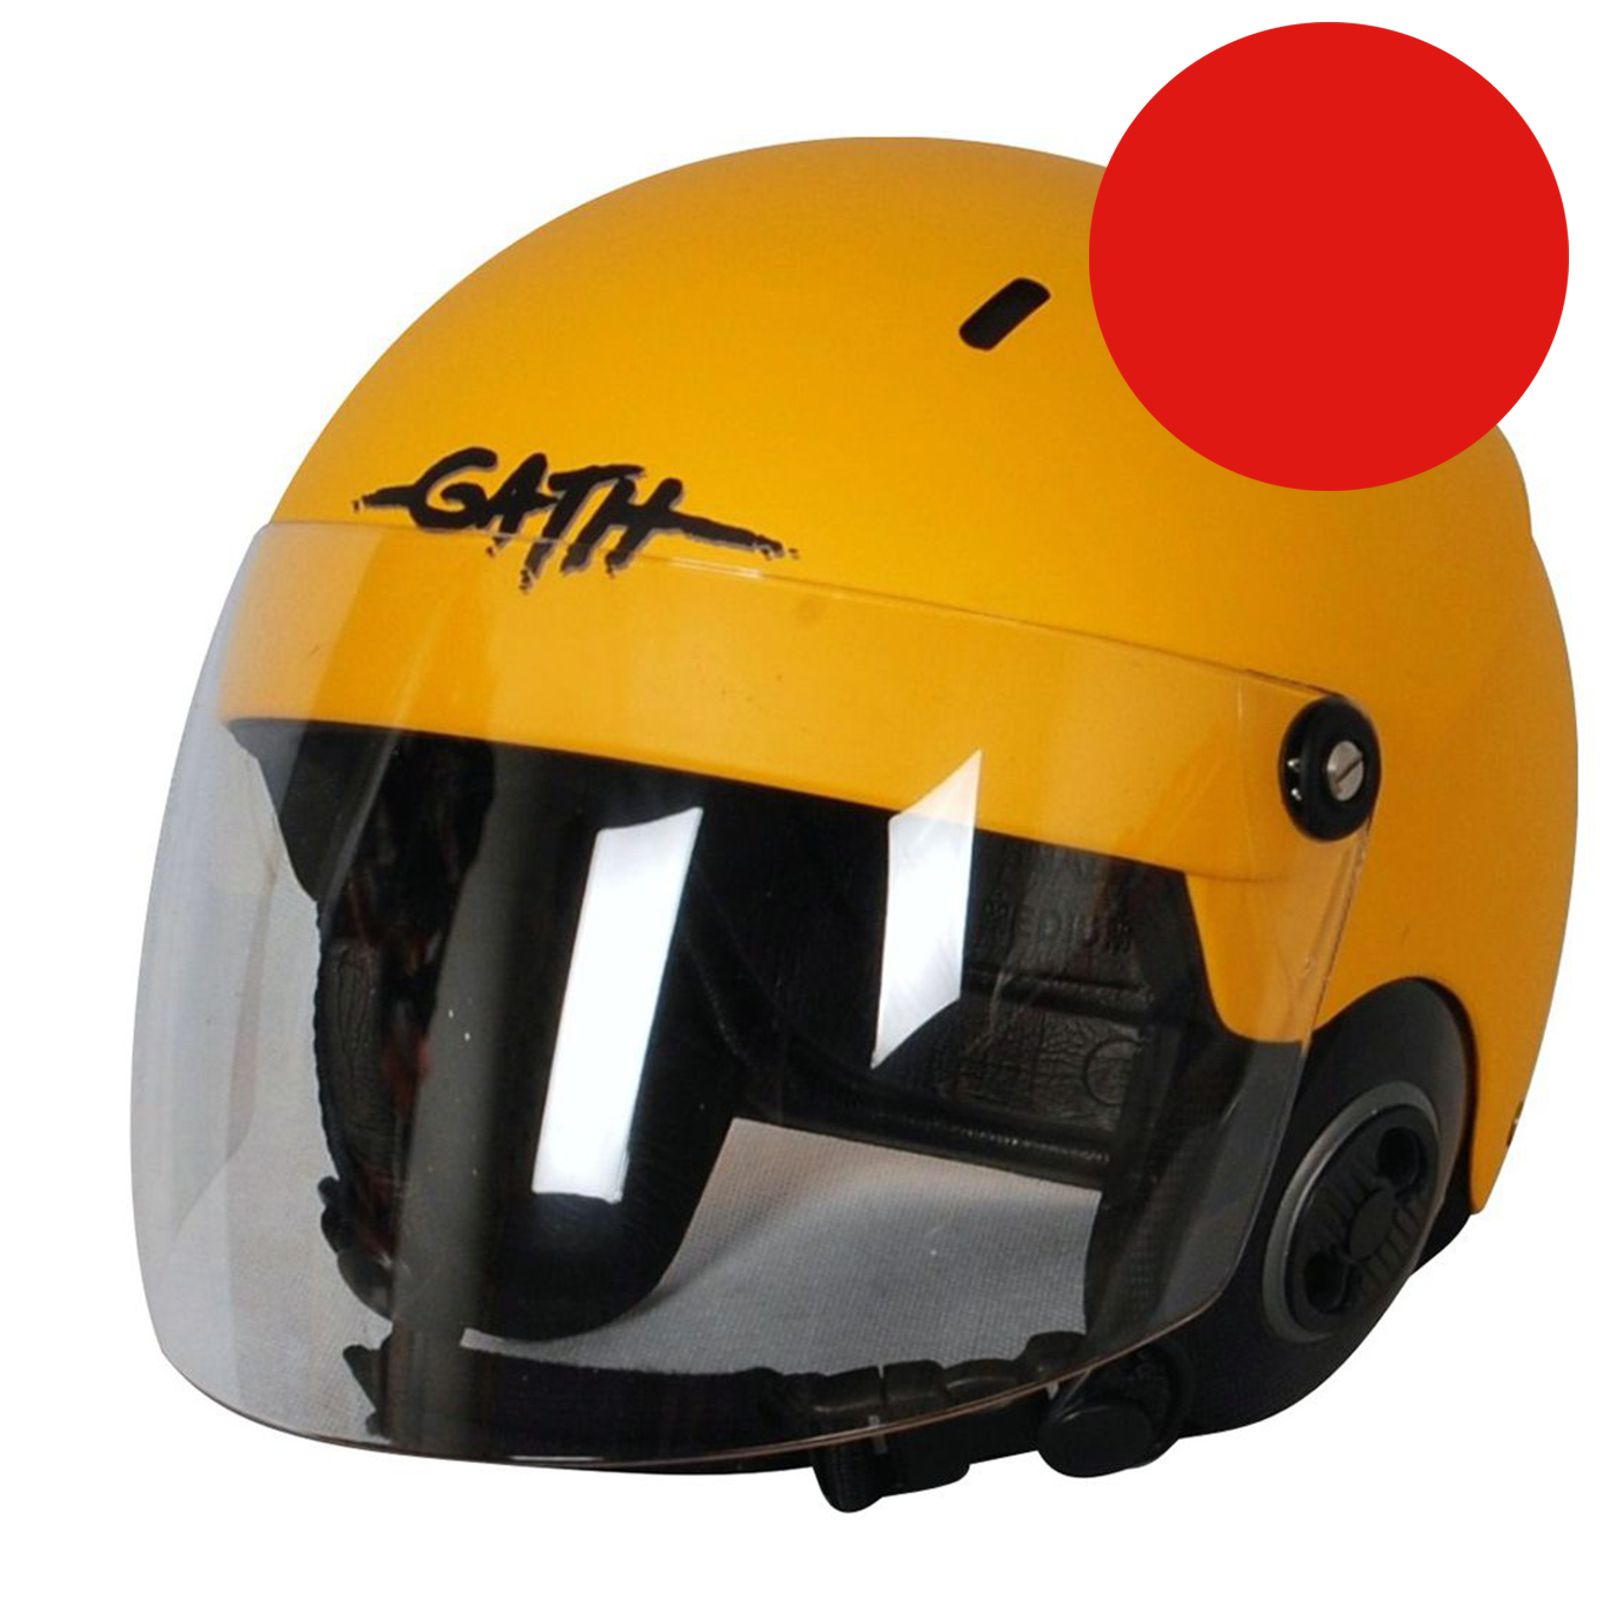 GATH Helm RESCUE Safety Rot matt Gr M mit klarem Vollvisier